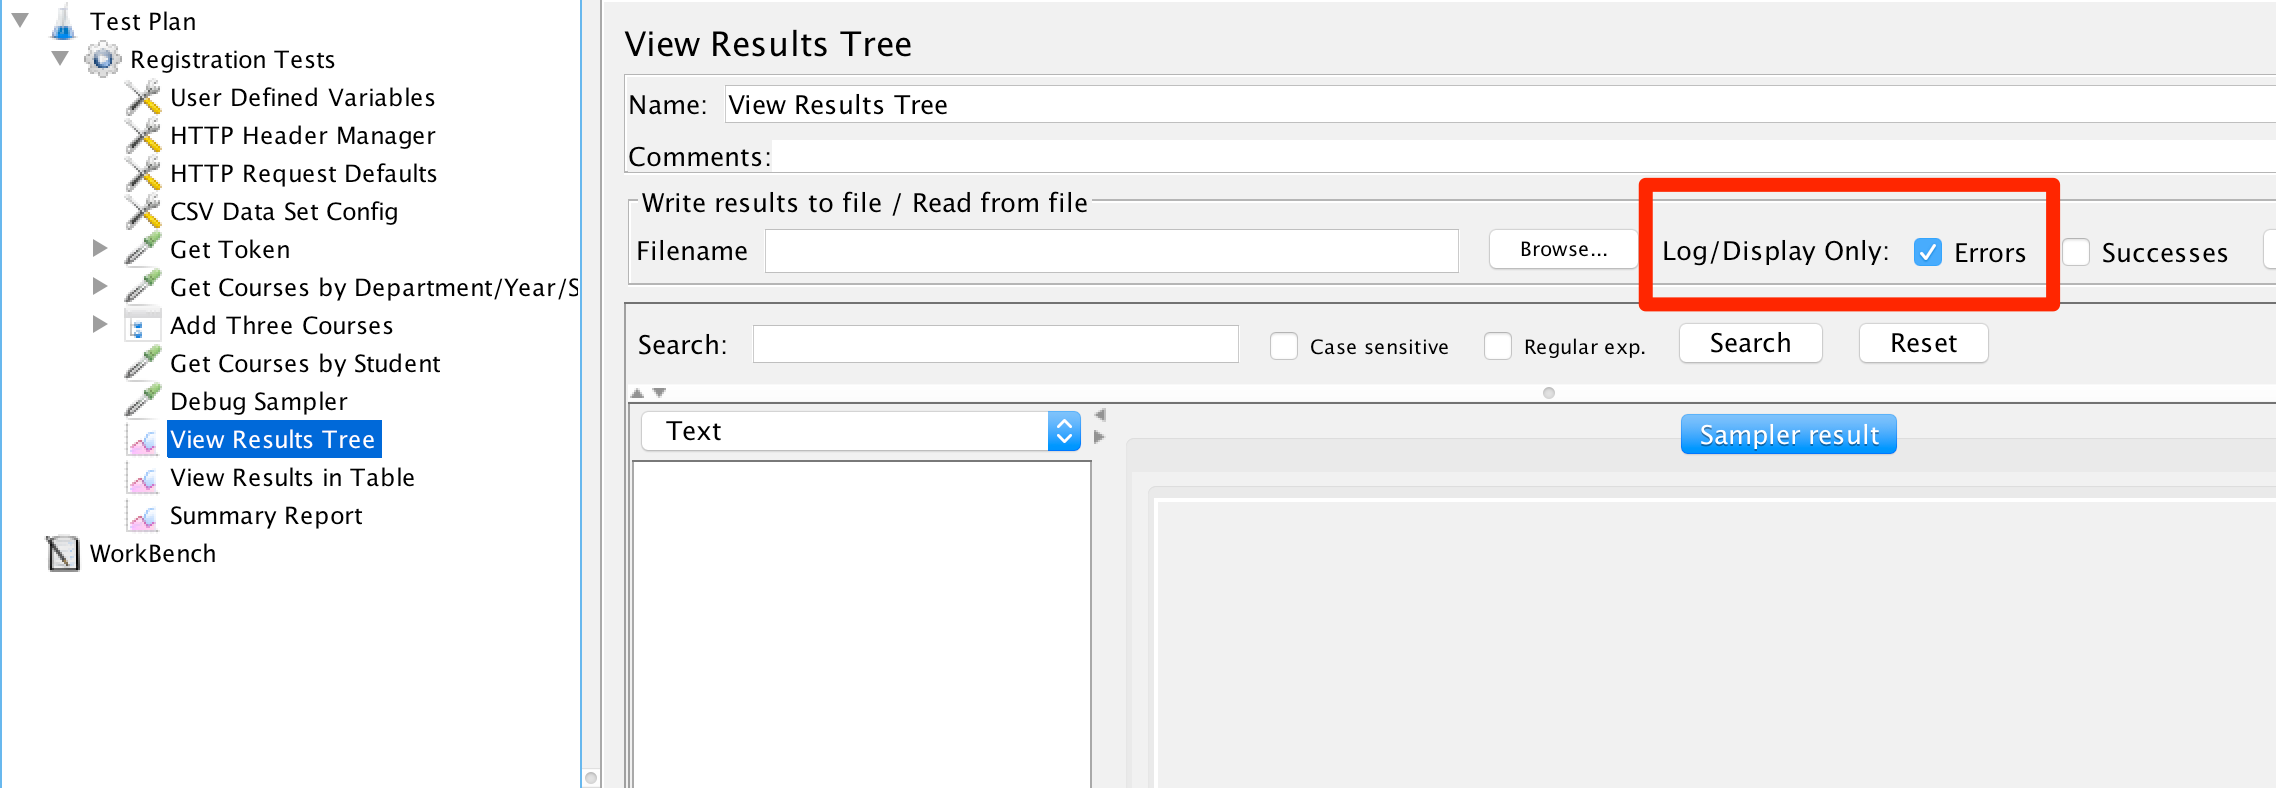 Log Errors Only in View Results Tree